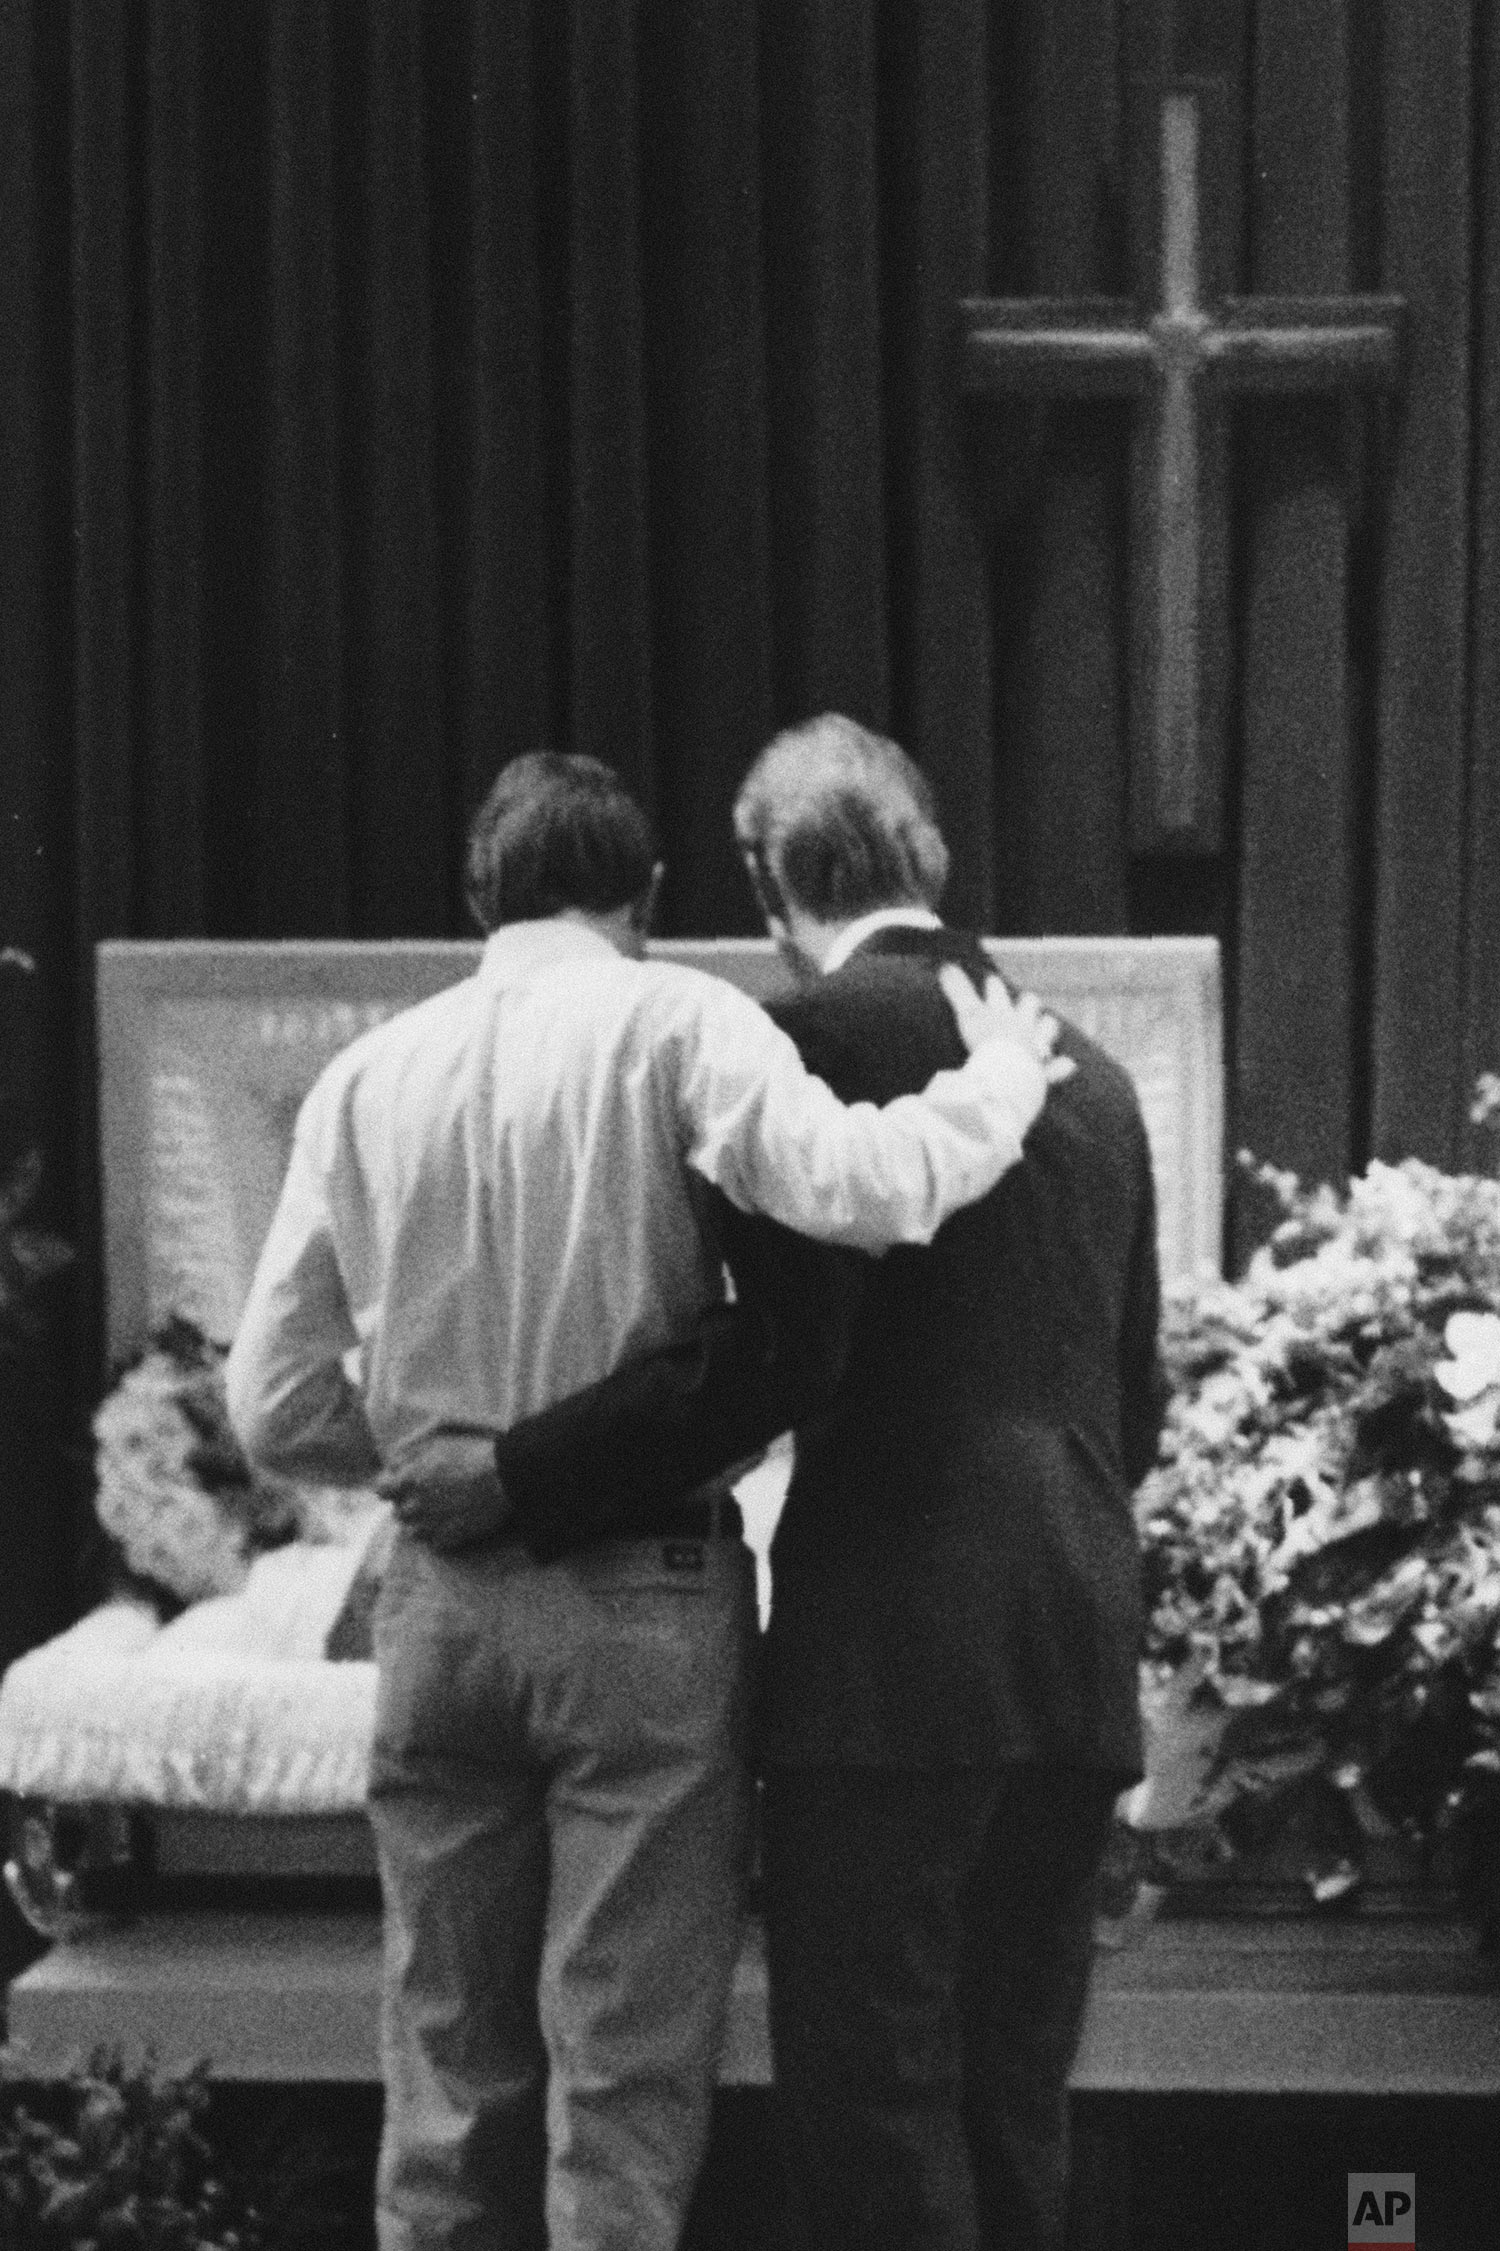 In this March 11, 1991 file photo, mourners embrace each other next to the casket of AIDS patient David Thurmond during his funeral service in Houston. (AP Photo/Houston Chronicle, John Everett)